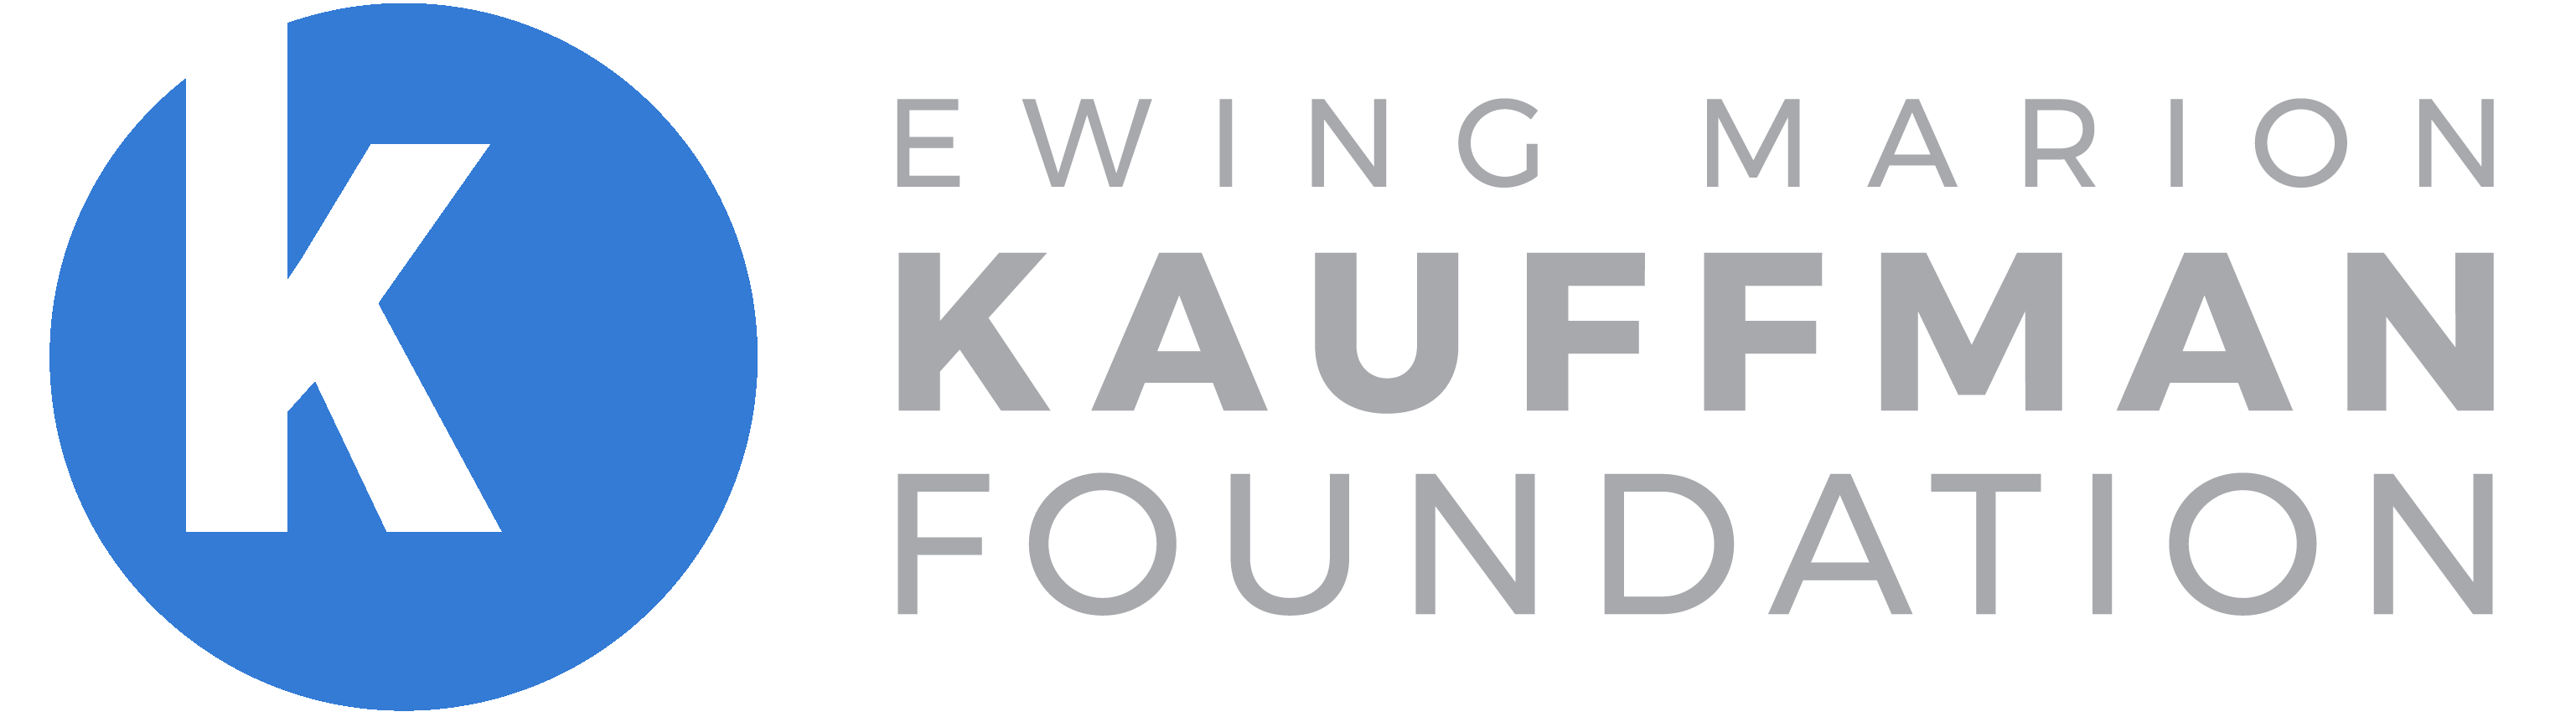 Kauffman - The Foundation of Entrepreneurship